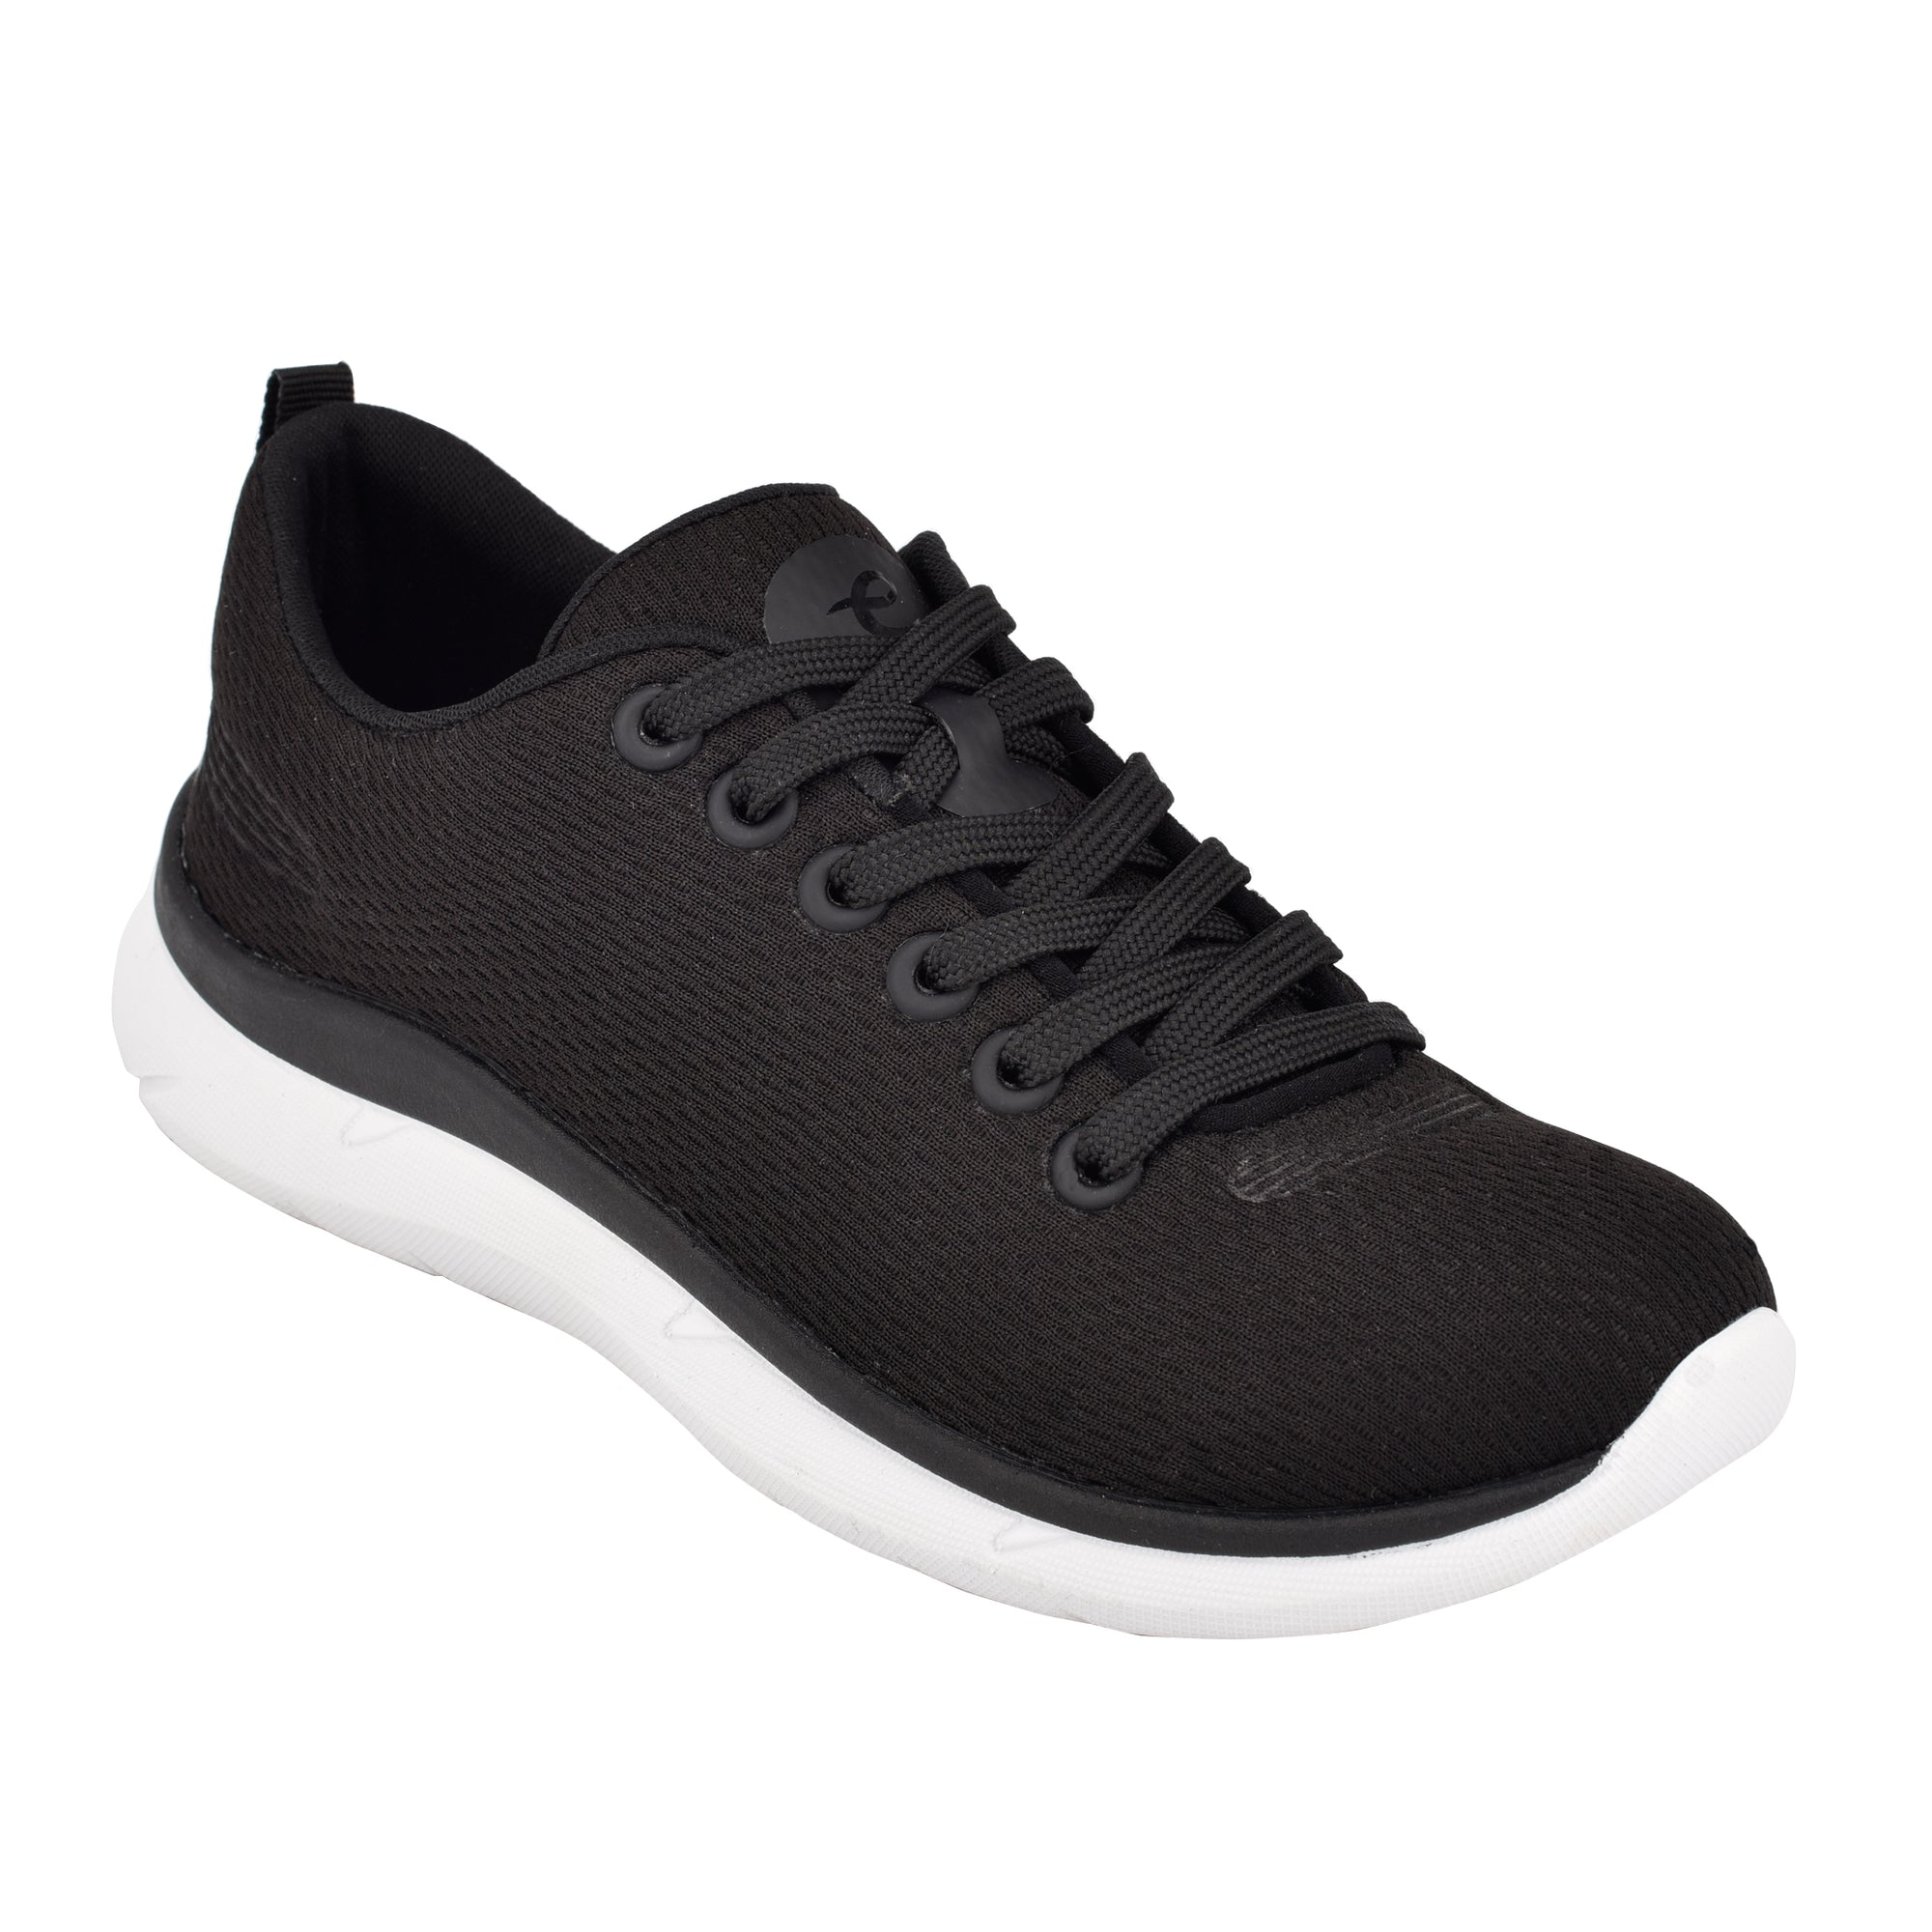 Skylar Lace Up Walking Shoes